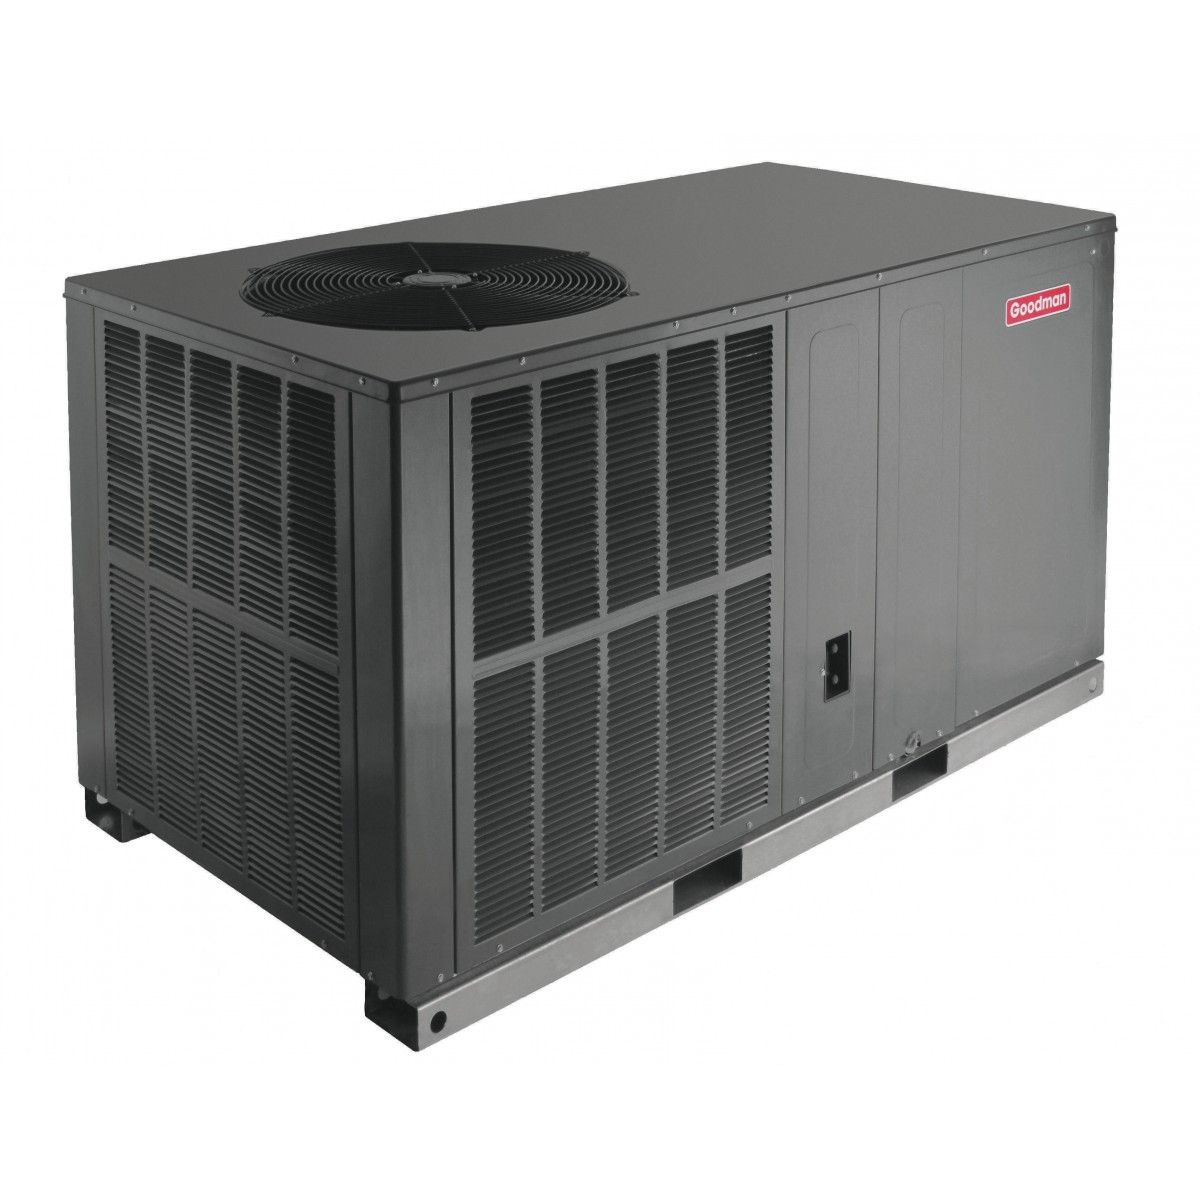 #A62538 Goodman 4.0 Ton 14 SEER Electric Heat Package Unit  Highly Rated 9999 4 Ton Goodman Air Conditioner wallpapers with 1200x1200 px on helpvideos.info - Air Conditioners, Air Coolers and more